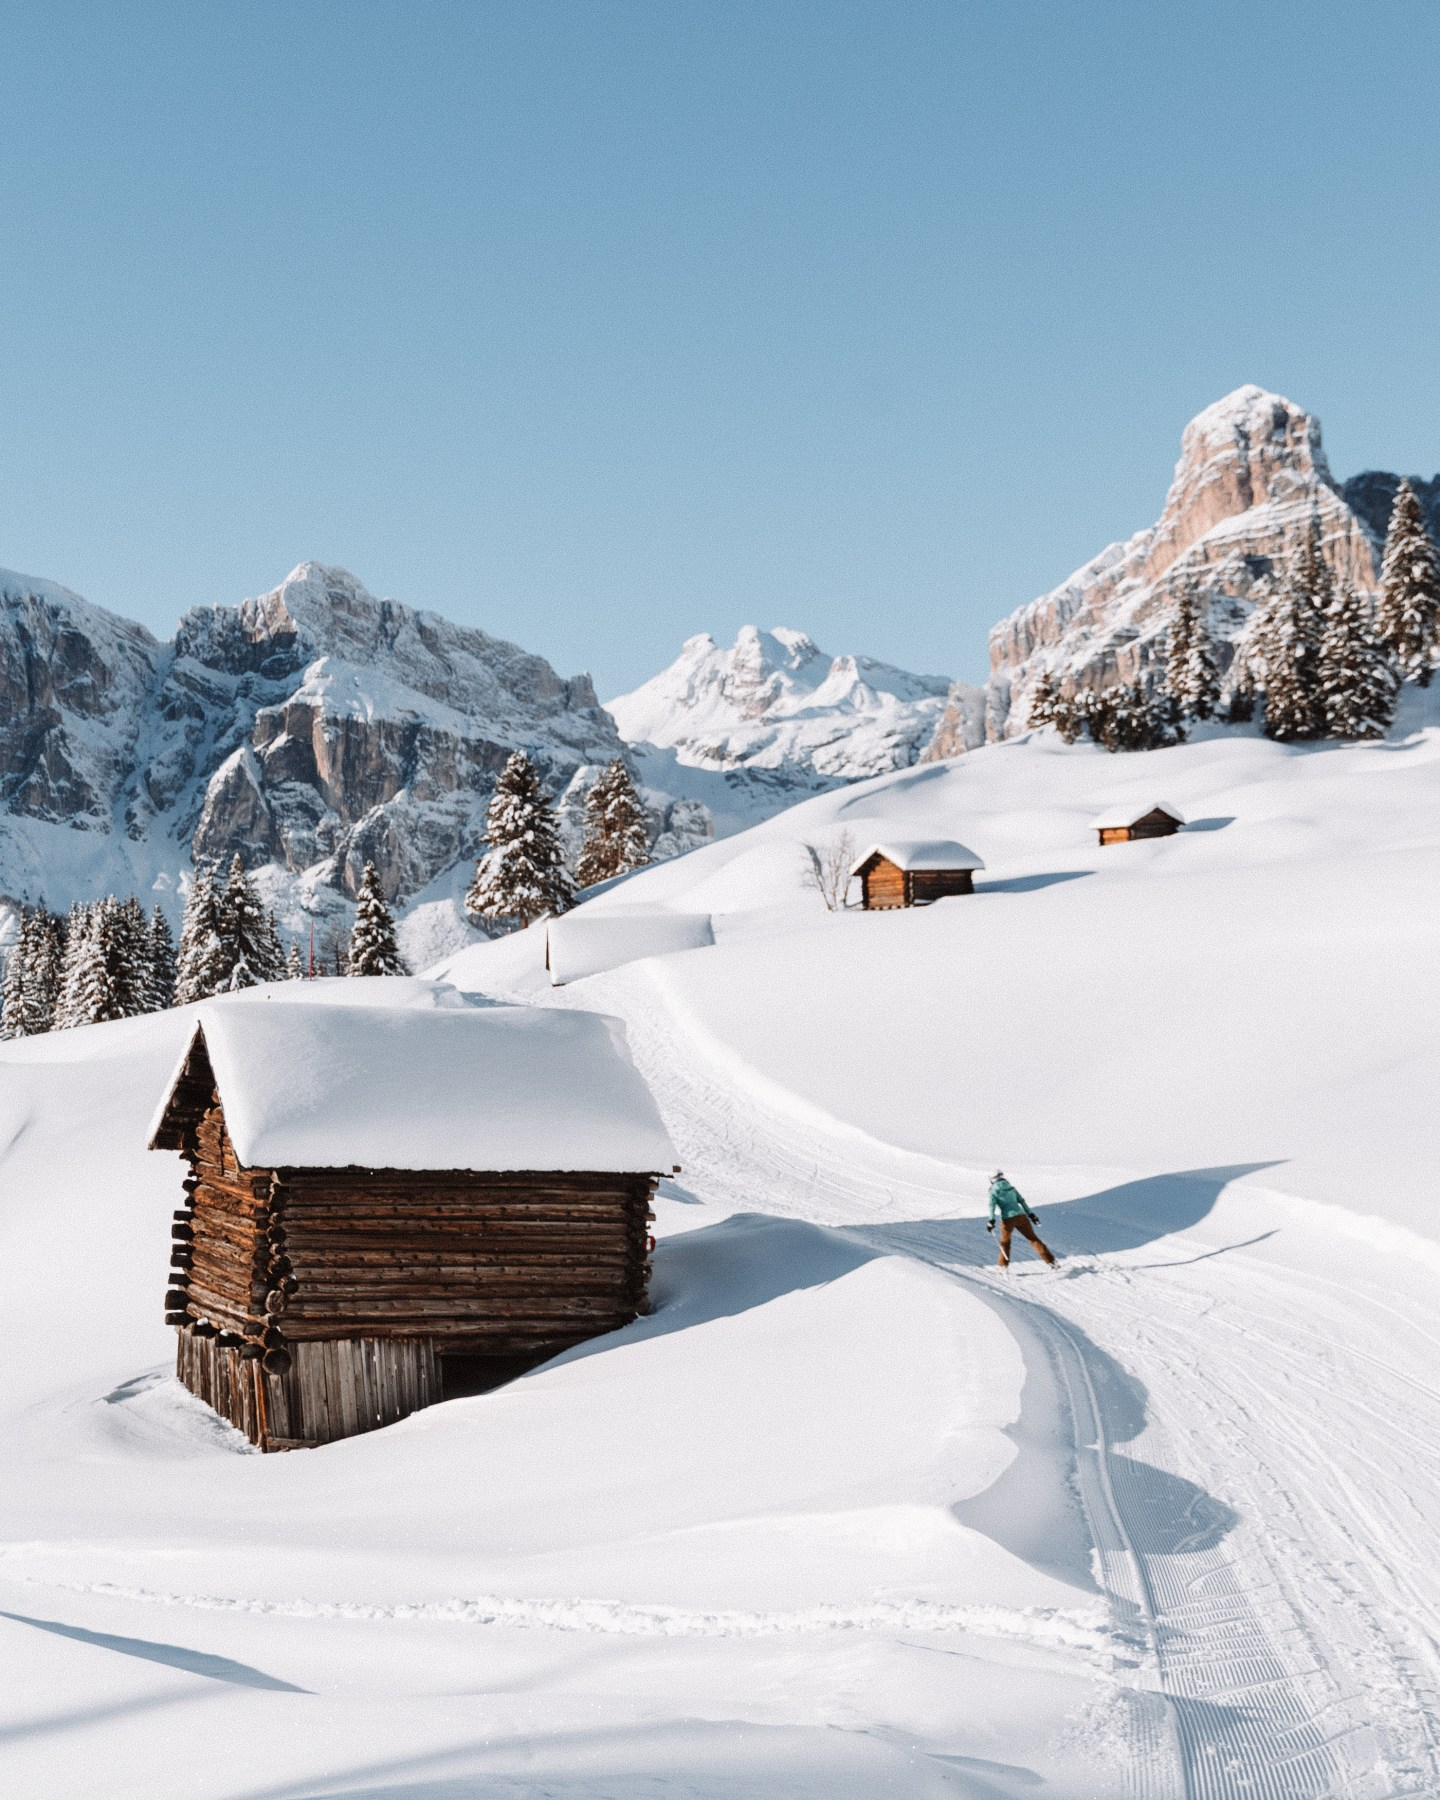 weekend-winter-getaway-dolomites-alliemtaylor-1